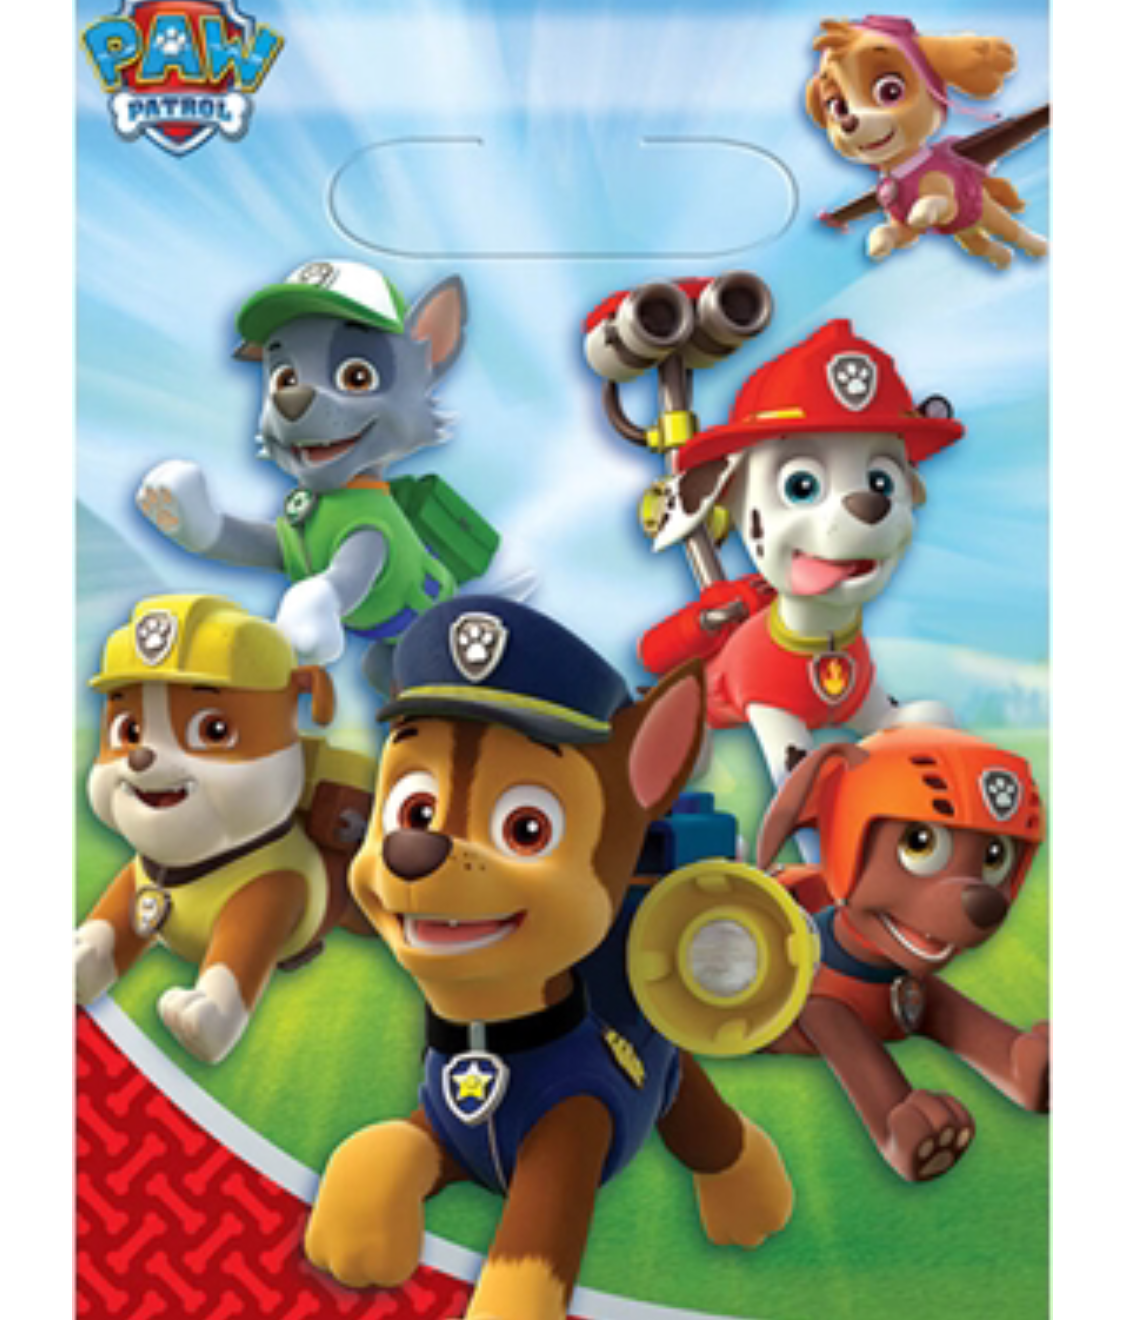 Paw Patrol party loot bags - Doggy bags